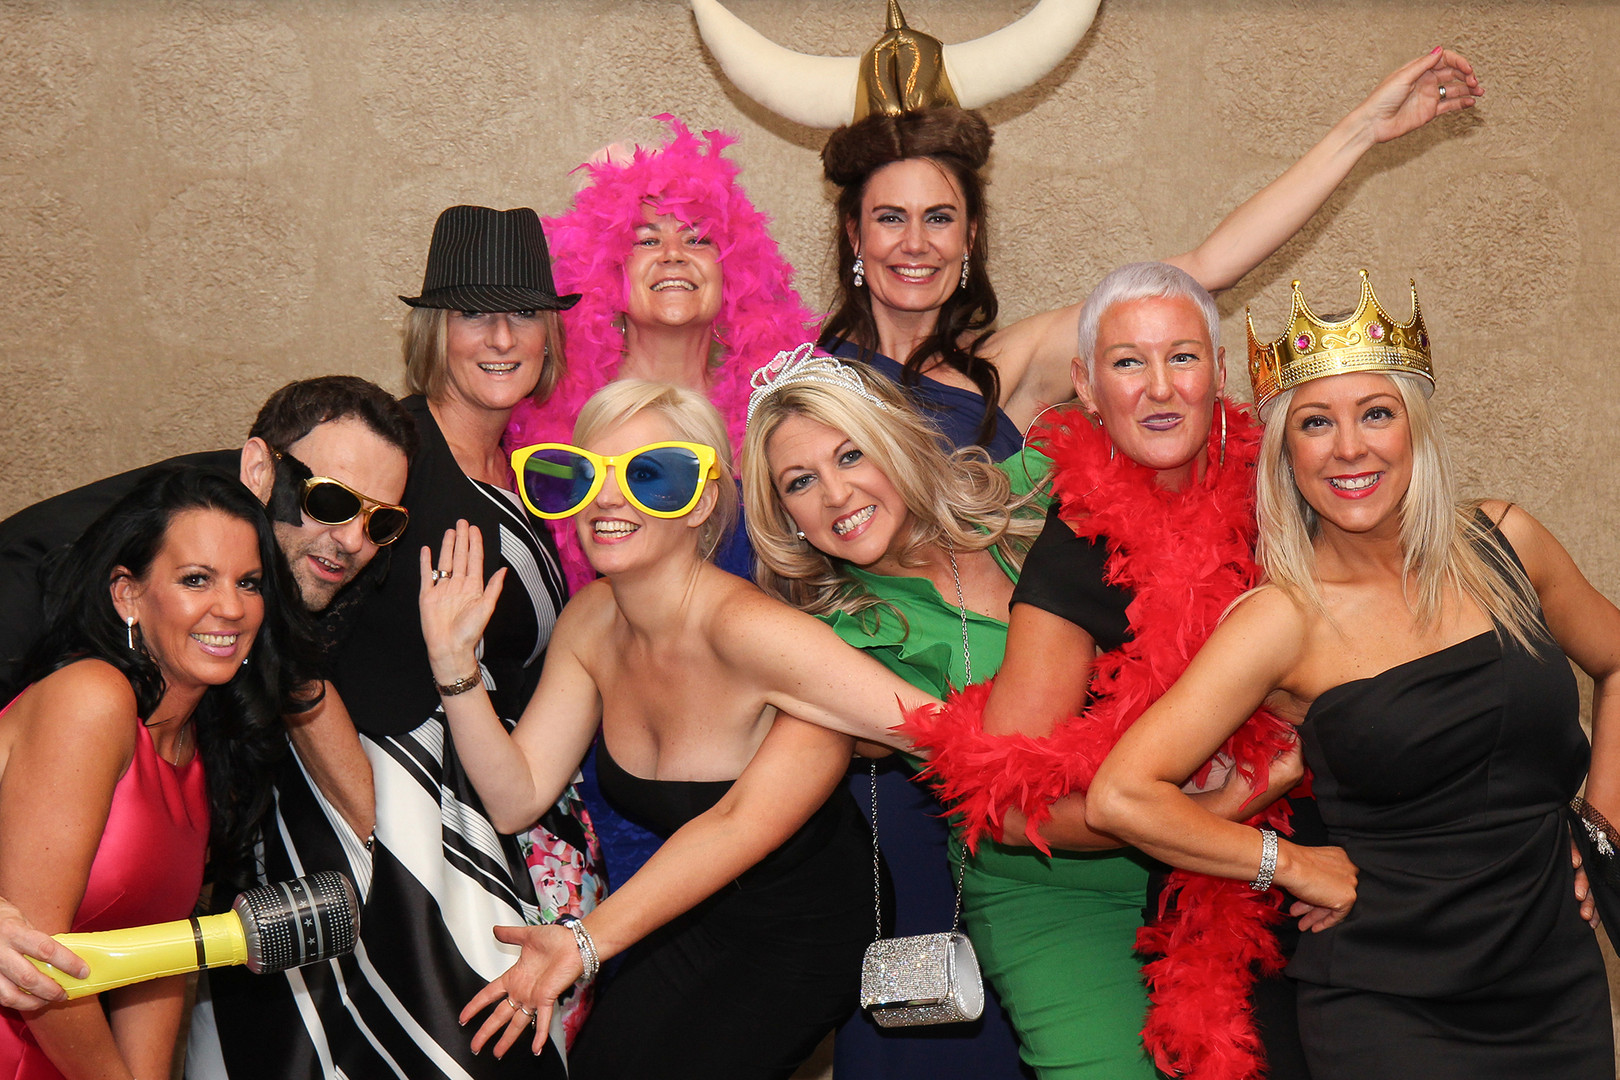 photo-booth-hire-warrington-002.jpg